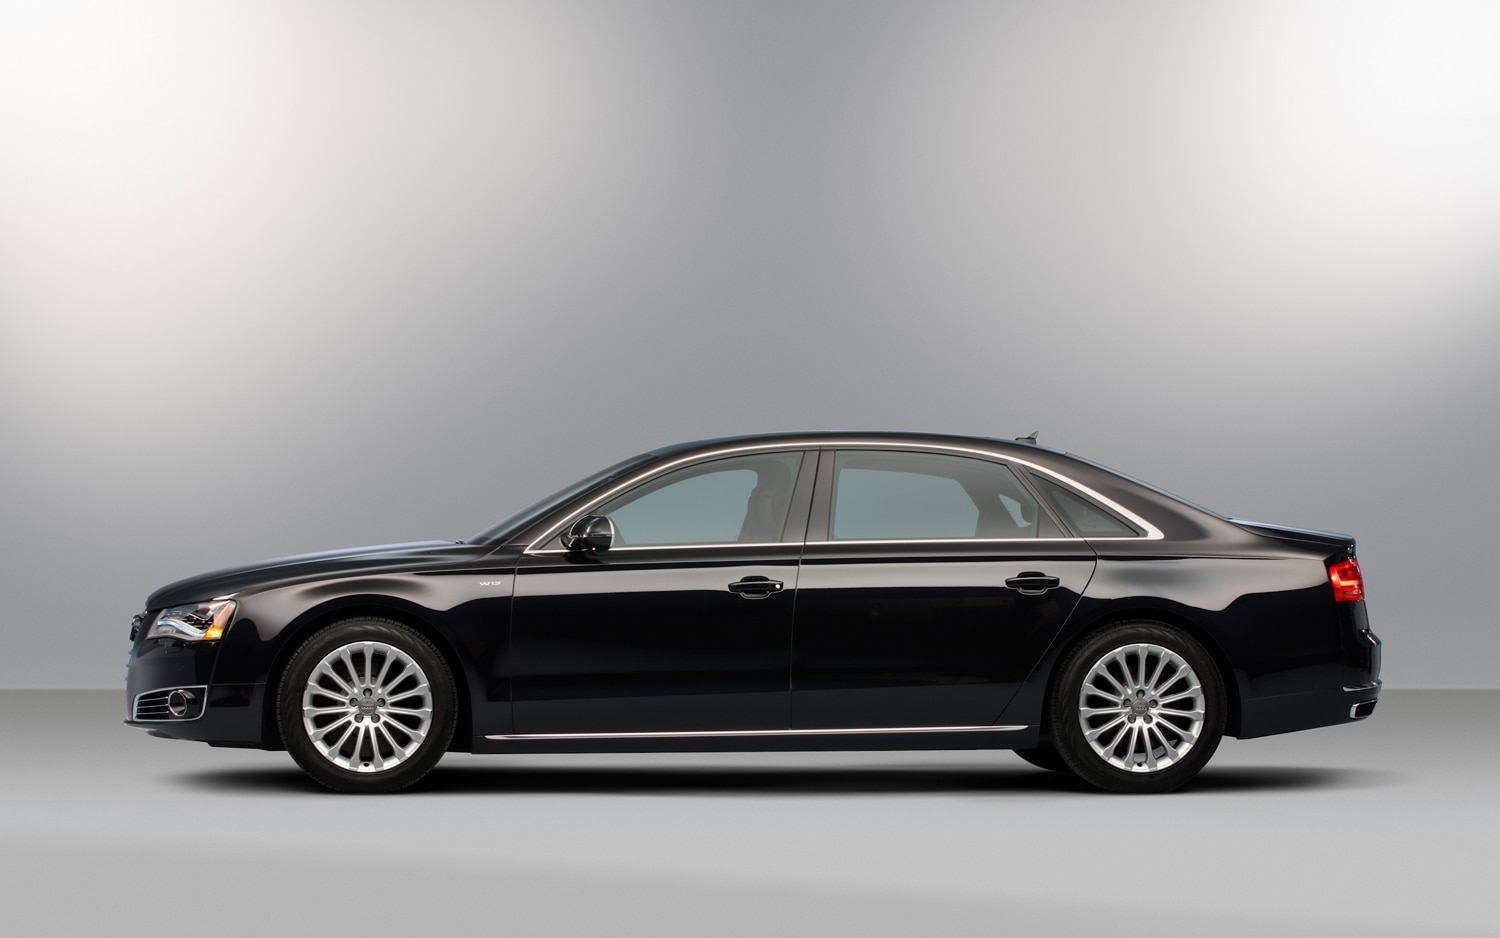 Audi Prices 2013 A8 3 0T at $73 095 A8 L W12 at $135 395